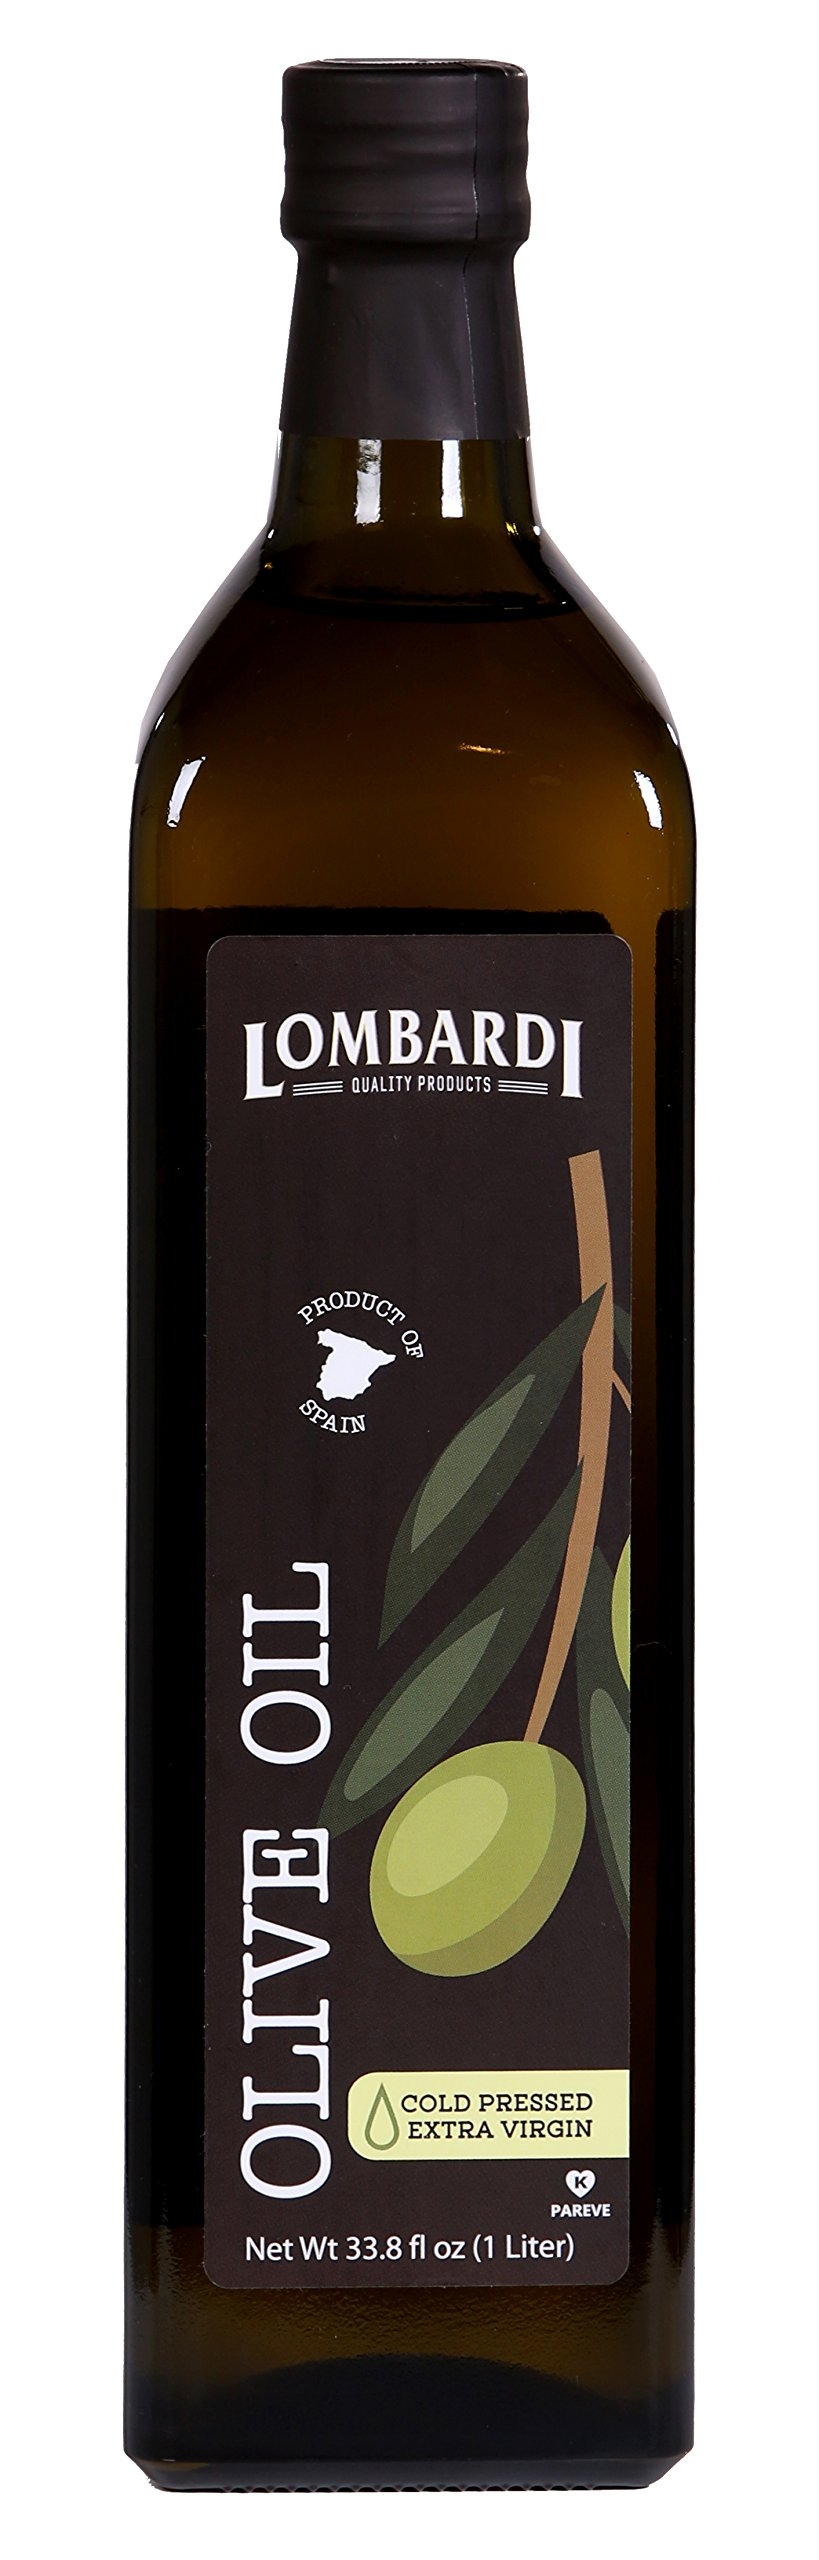 Lombardi Extra Virgin Olive Oil 33.8 fl oz Premium Quality 1 Liter Kosher Product of Spain Cold Pressed for Cooking, Baking, and Salad Dressing by Lombardi (Image #1)